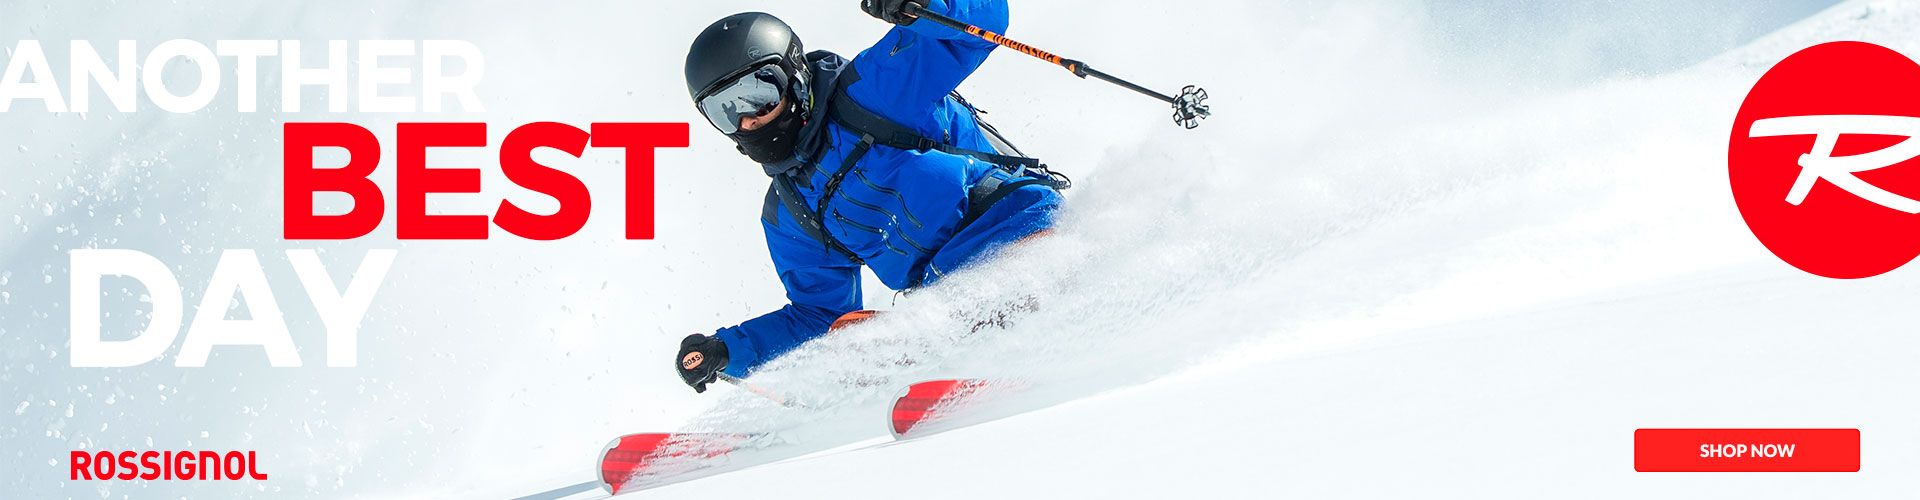 Shop Our Selection Of Rossignol Skis & Ski Equipment Gear Available For Sale Online and In-Store At Source For Sports Stores Near You.